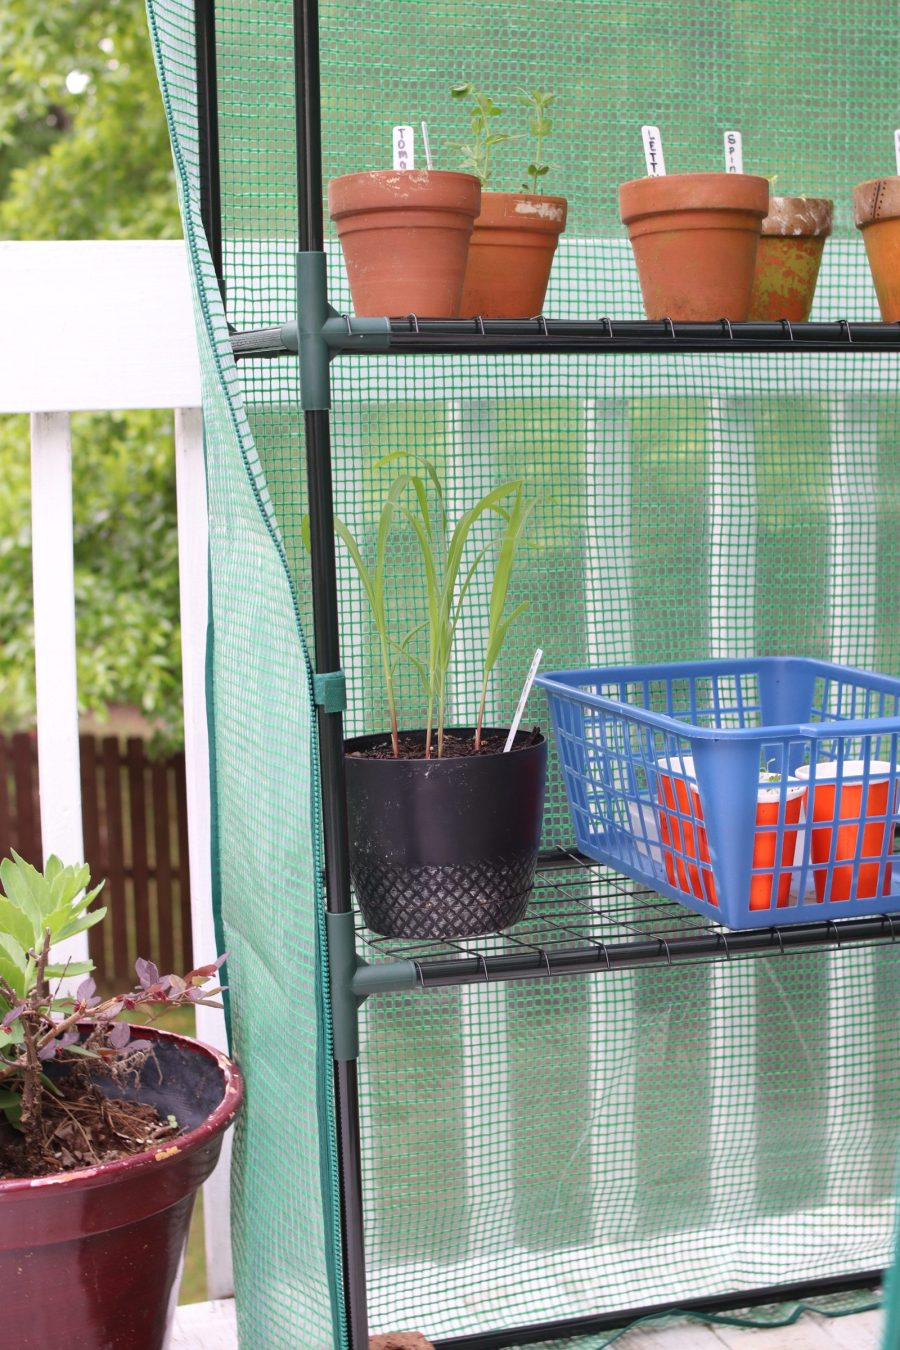 Mini Green House Gardening